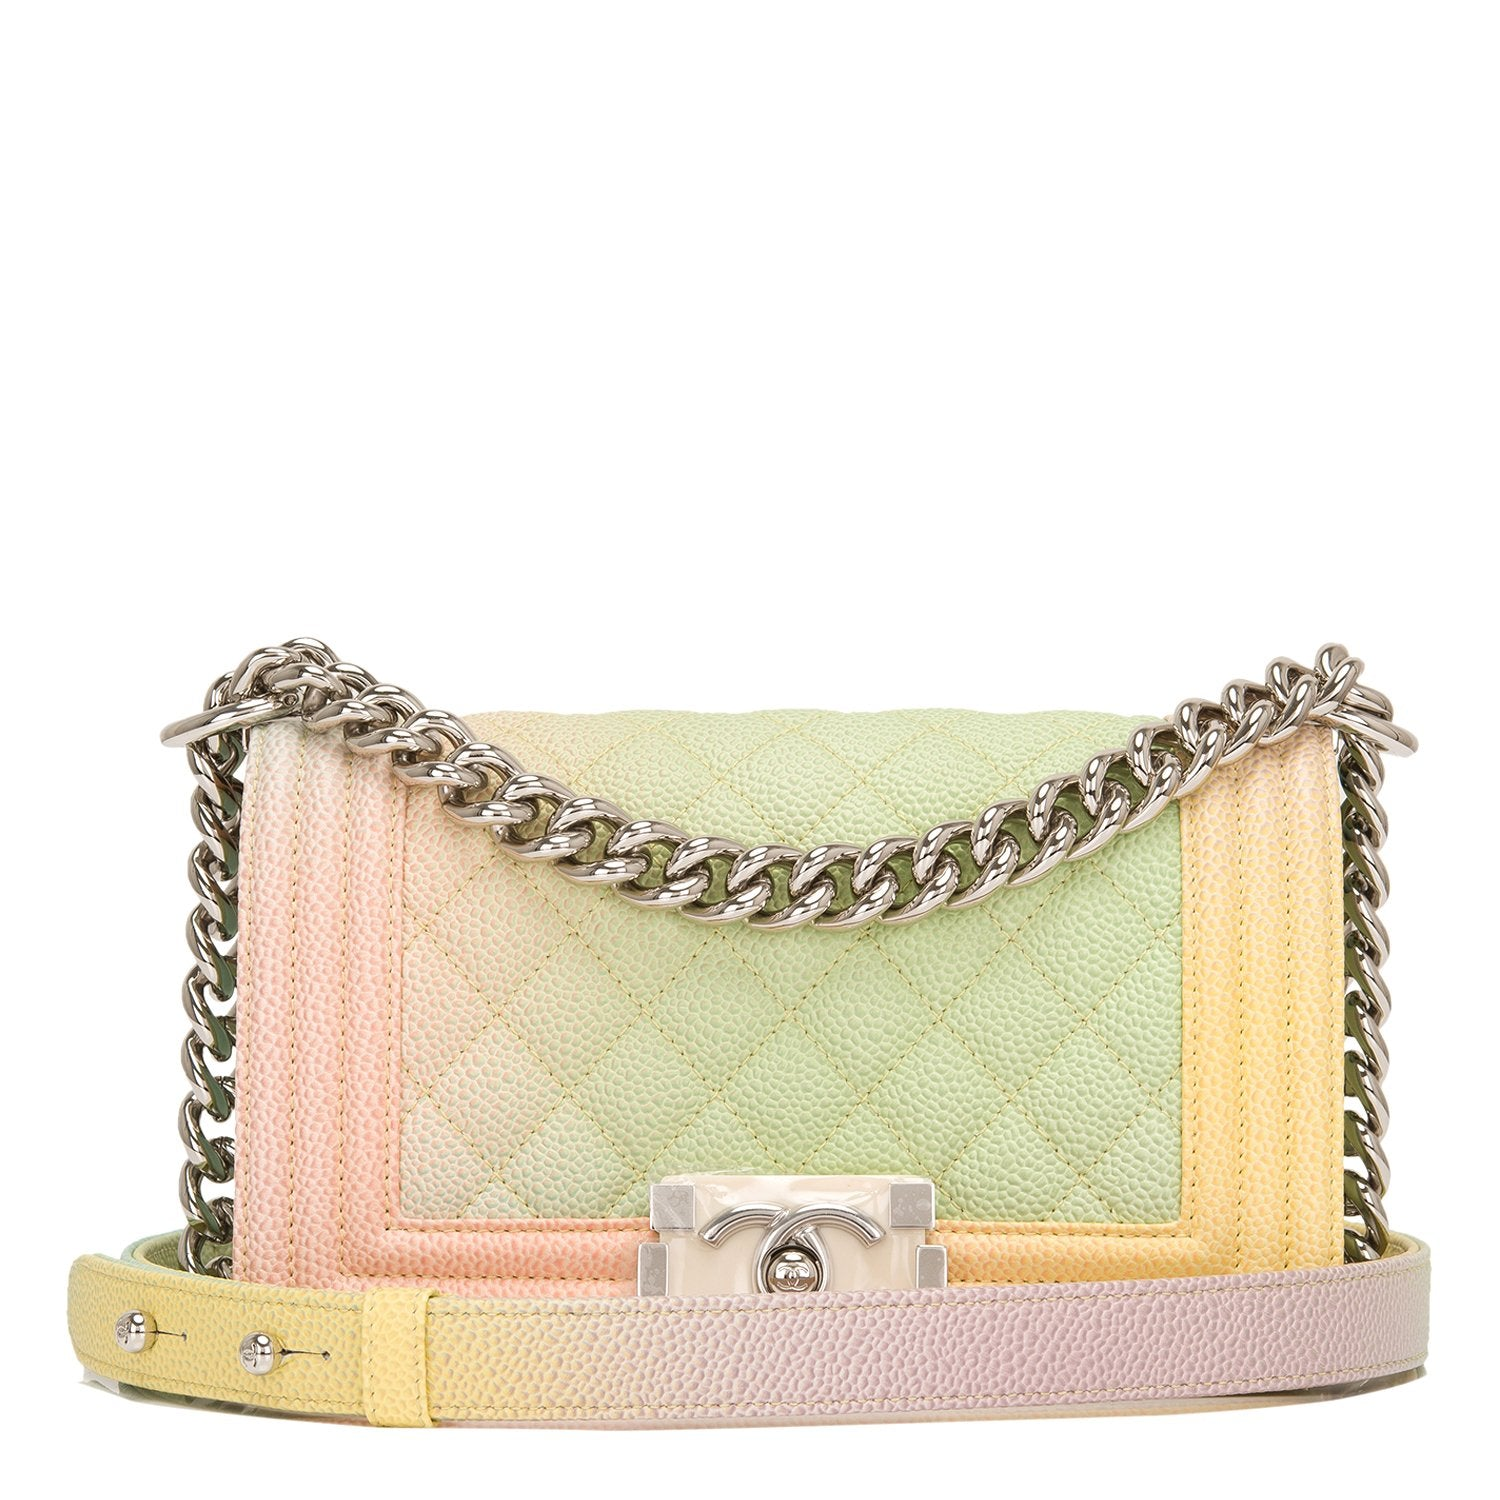 a9864c9e68a3 Chanel Ivory Rainbow Printed Caviar Small Boy Bag – Madison Avenue ...